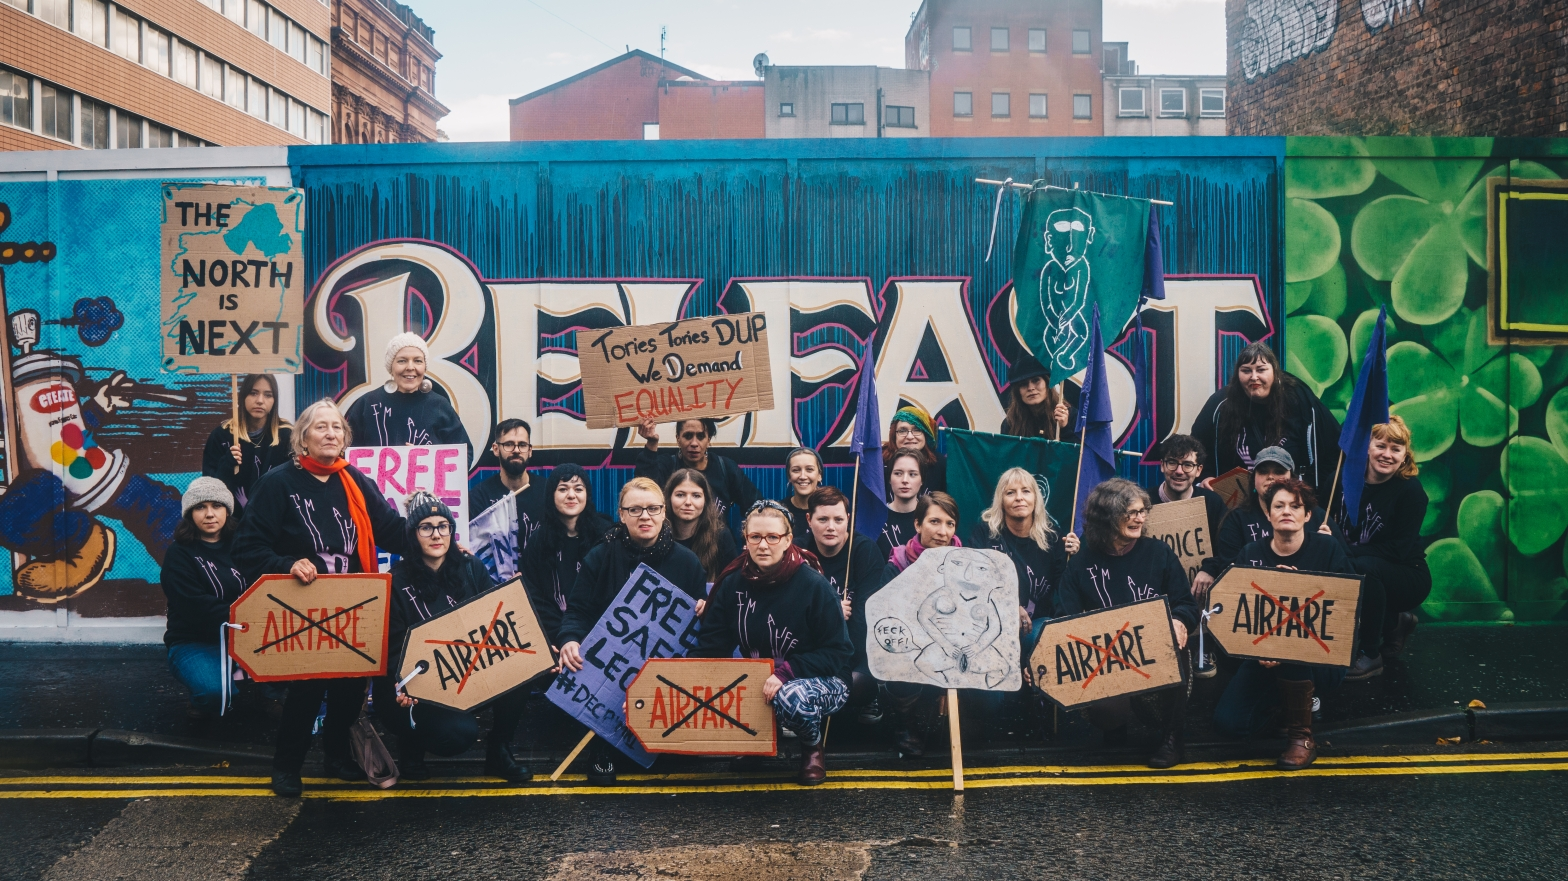 Pro-Choice Abortion rights campaigners holding signs in front of a Belfast mural